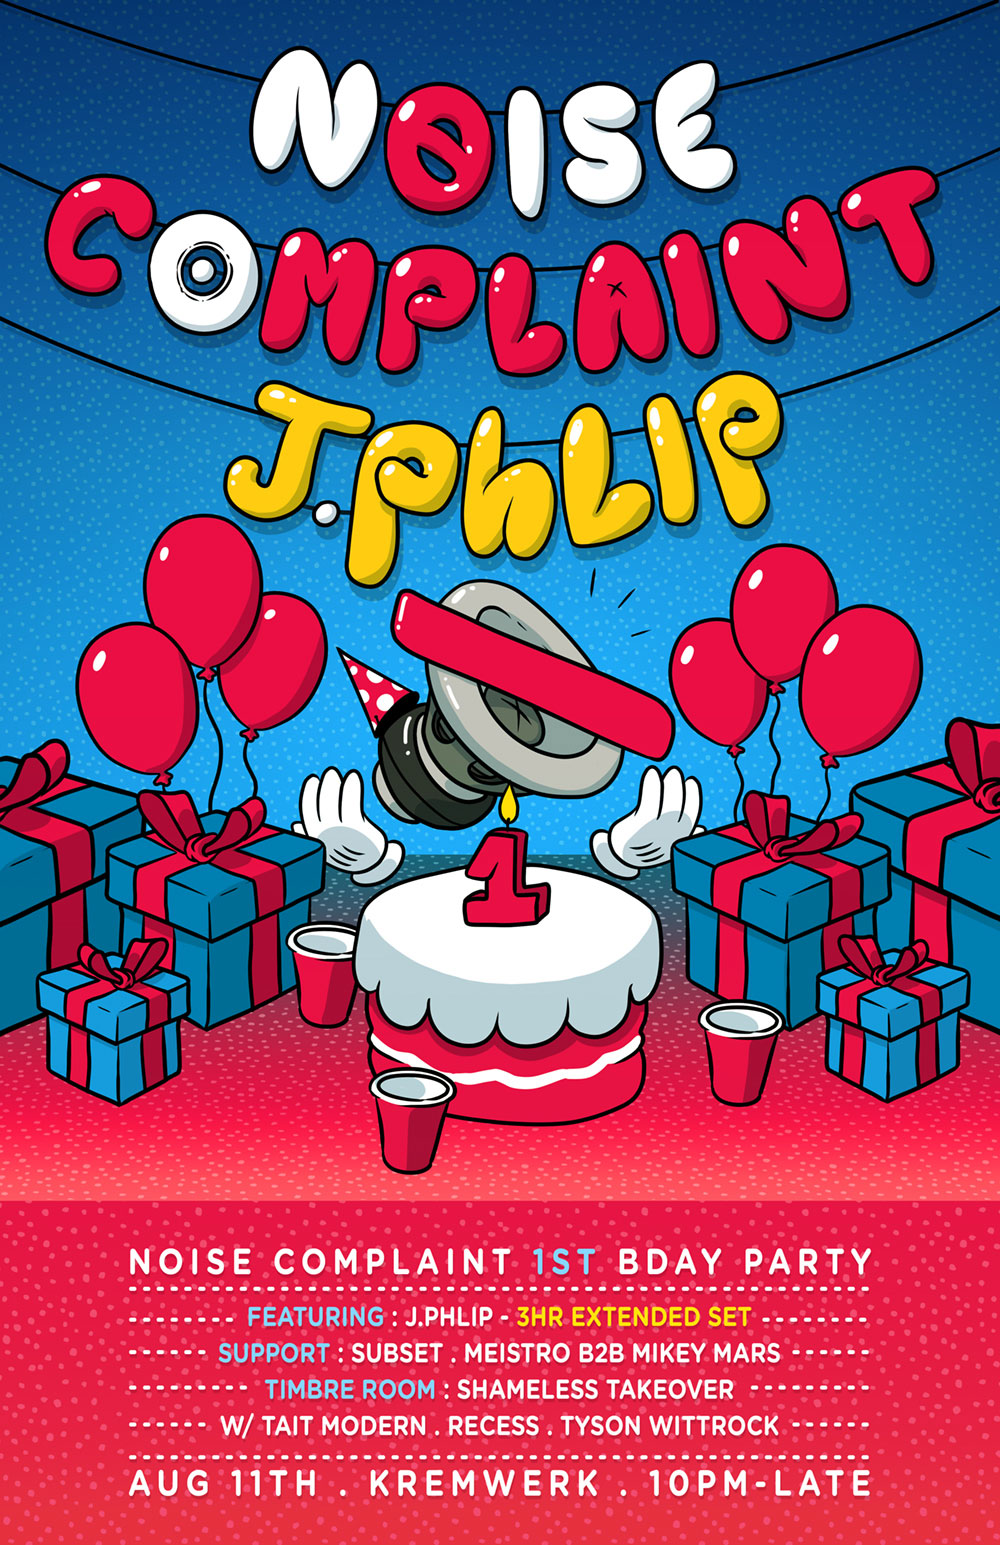 Noise Complaint Bday Flyer